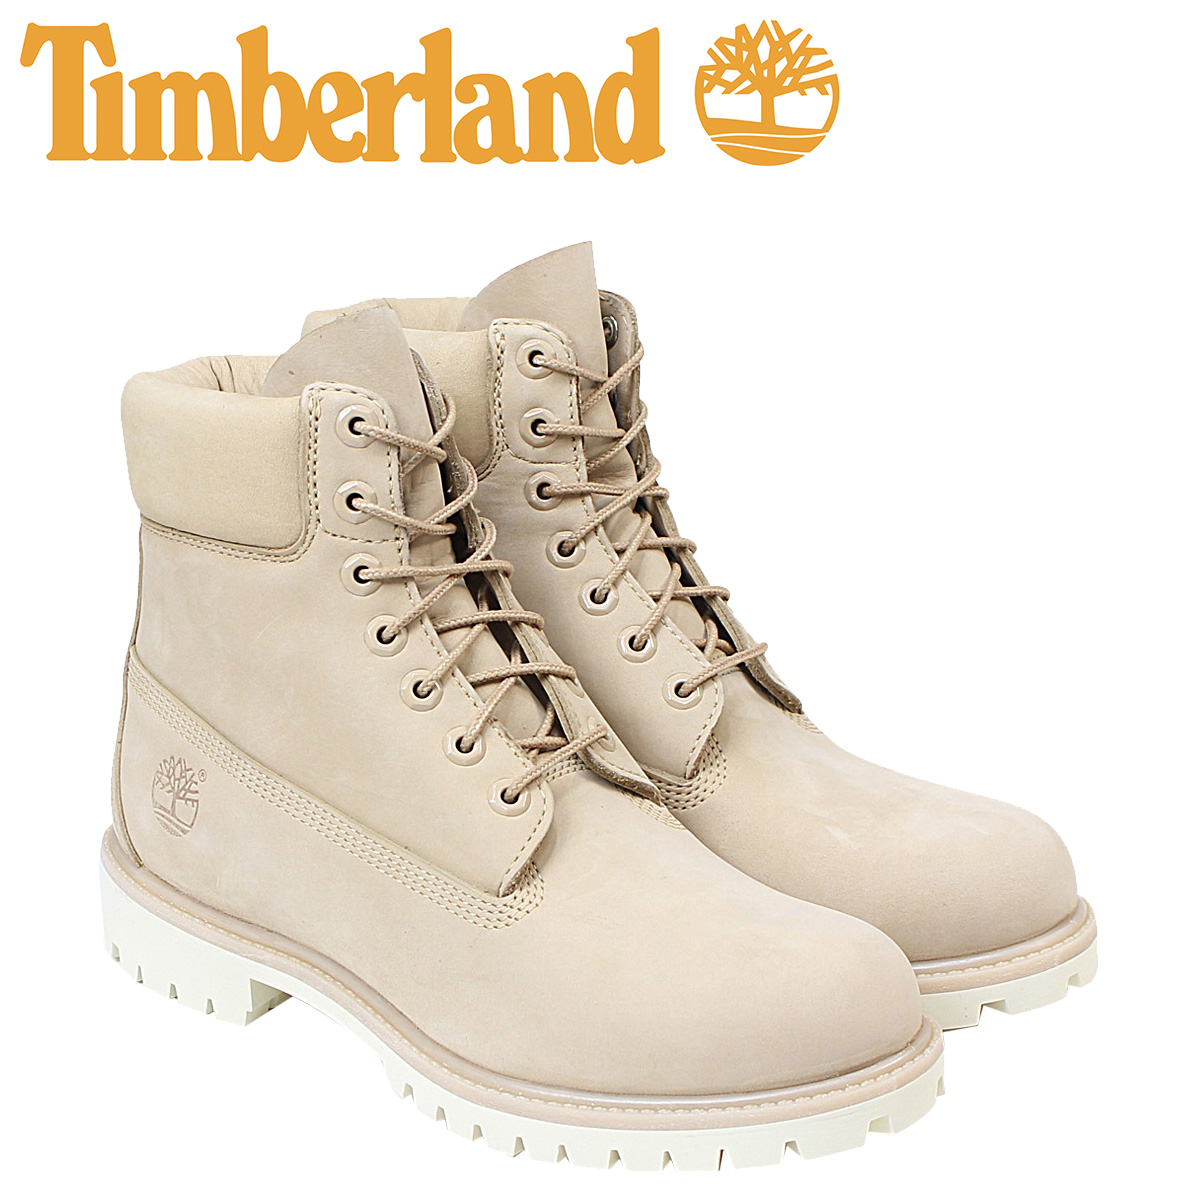 6 inches of Timberland men's timberland boots premium 6INCHI 6-INCH PREMIUM WATERPLOOF BOOTS A1BBL W Wise beige waterproofing [1/31 Shinnyu load]